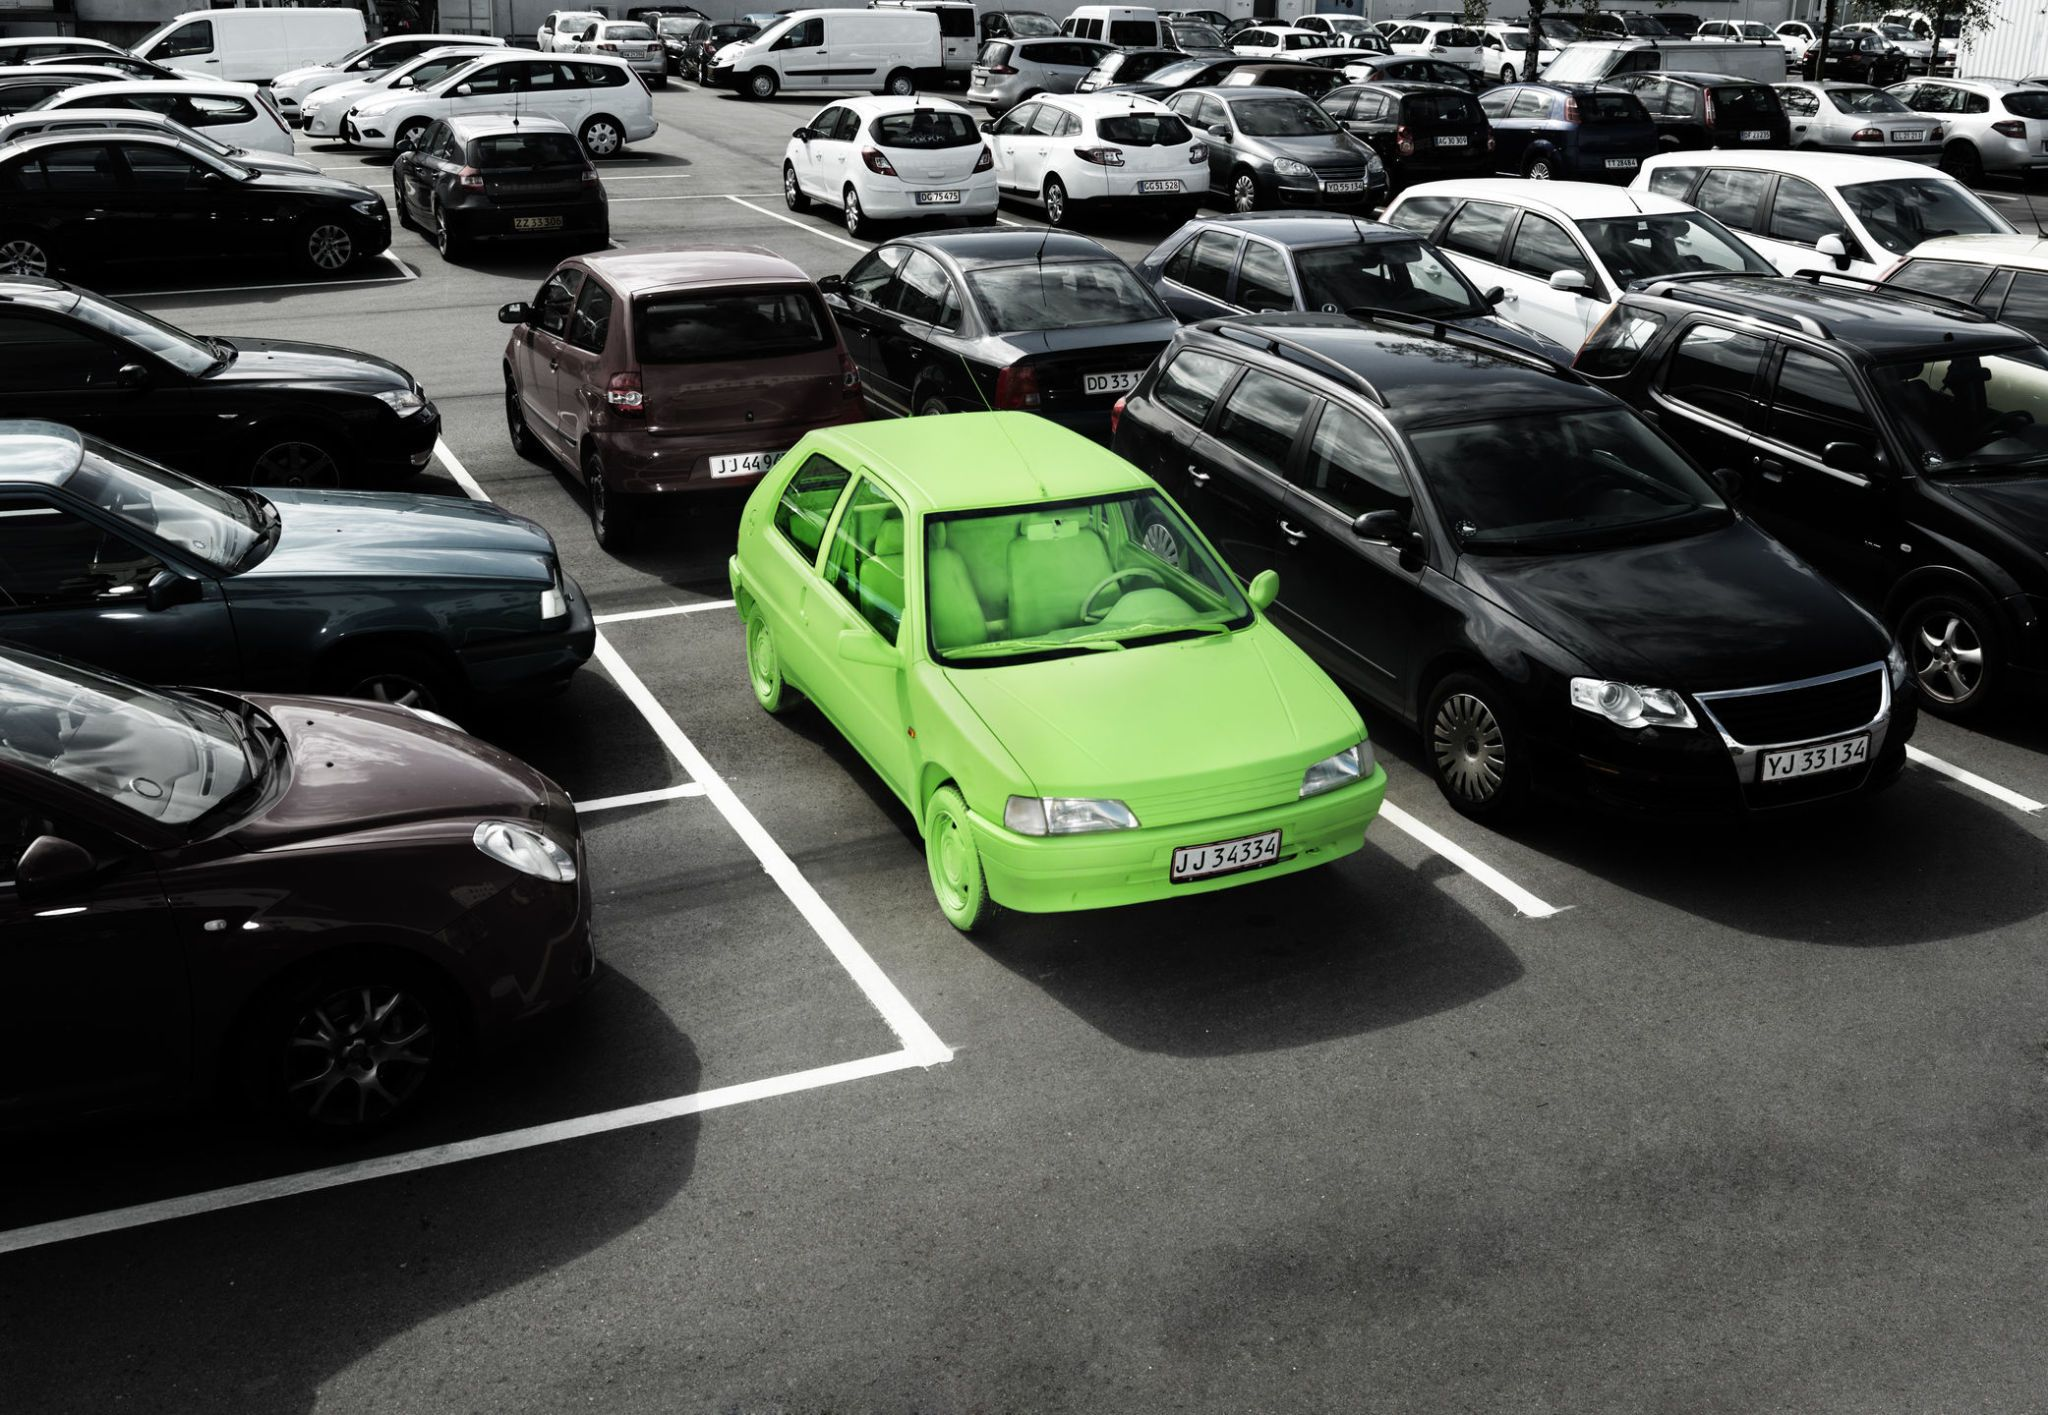 9 Ways to Make Your Car More Eco-Friendly